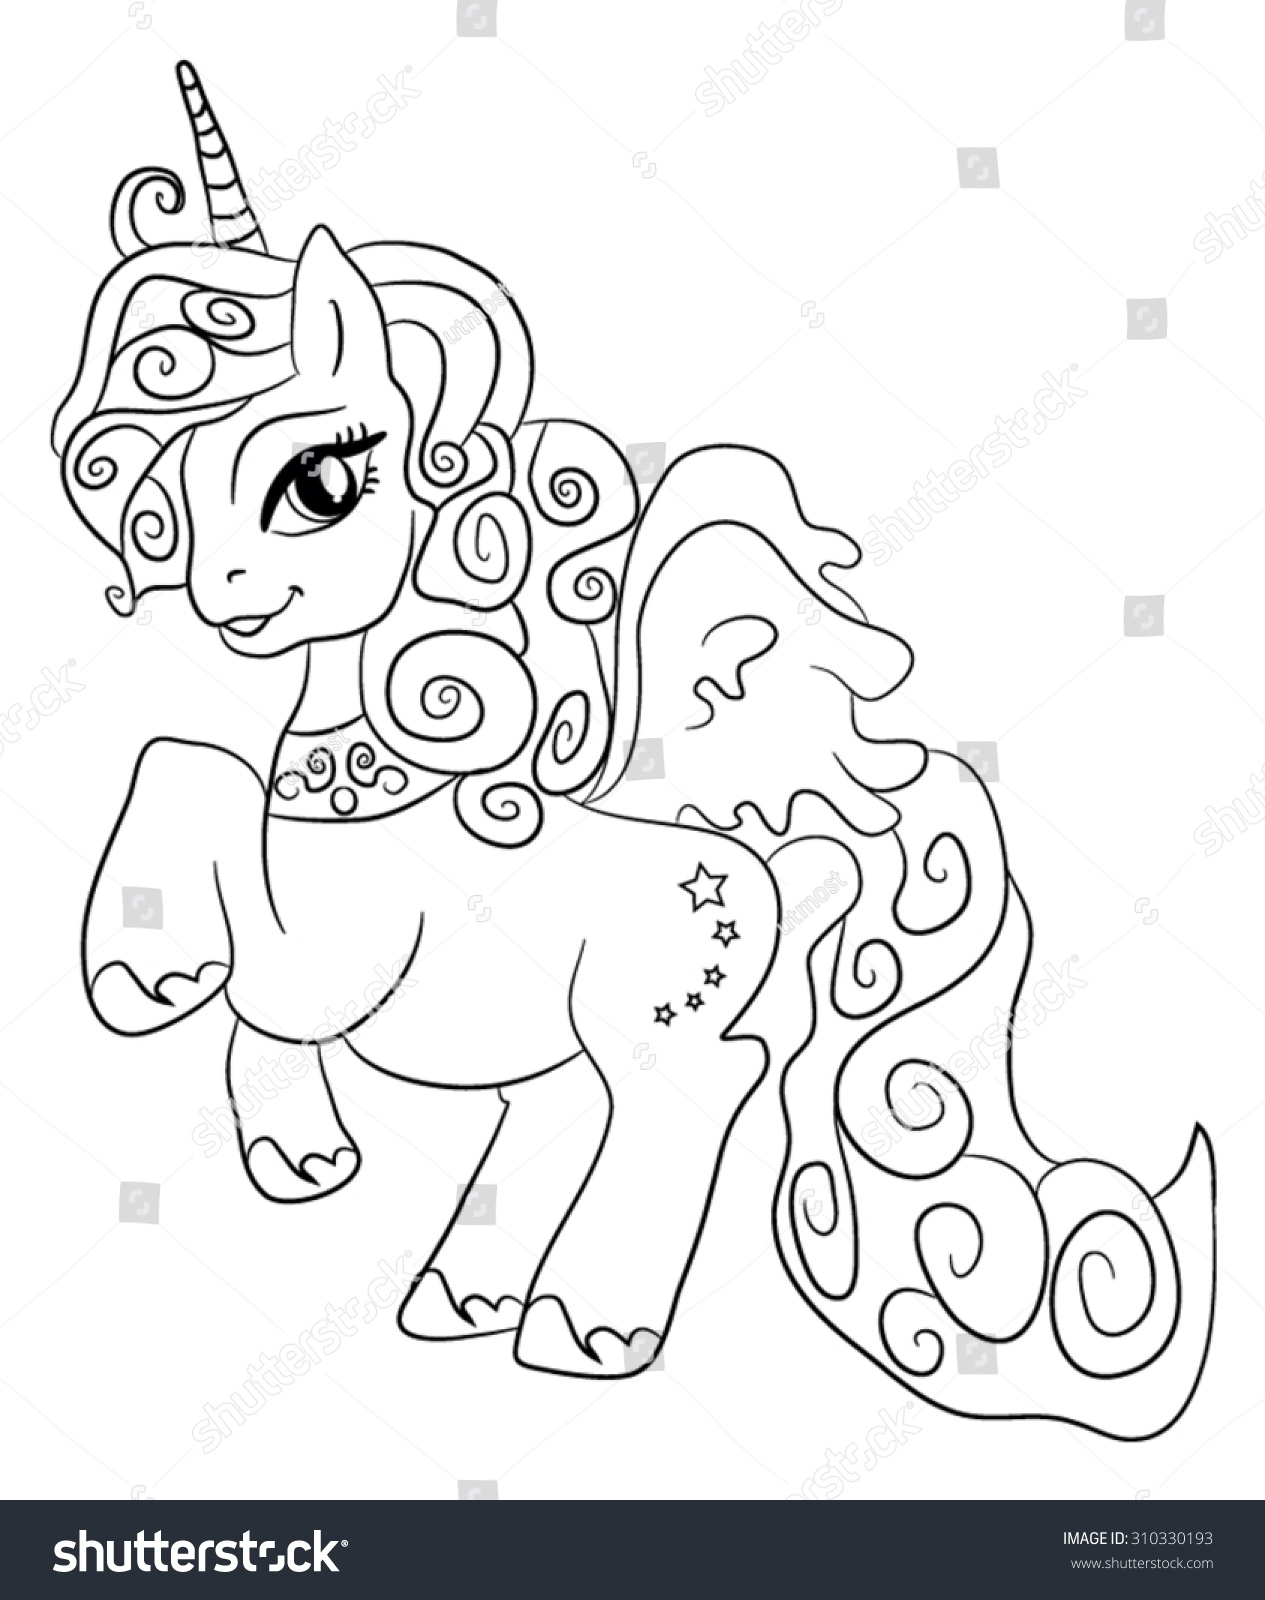 Unicorns coloring pages - Cute Cartoon Fairytale Unicorn Coloring Page For Kids